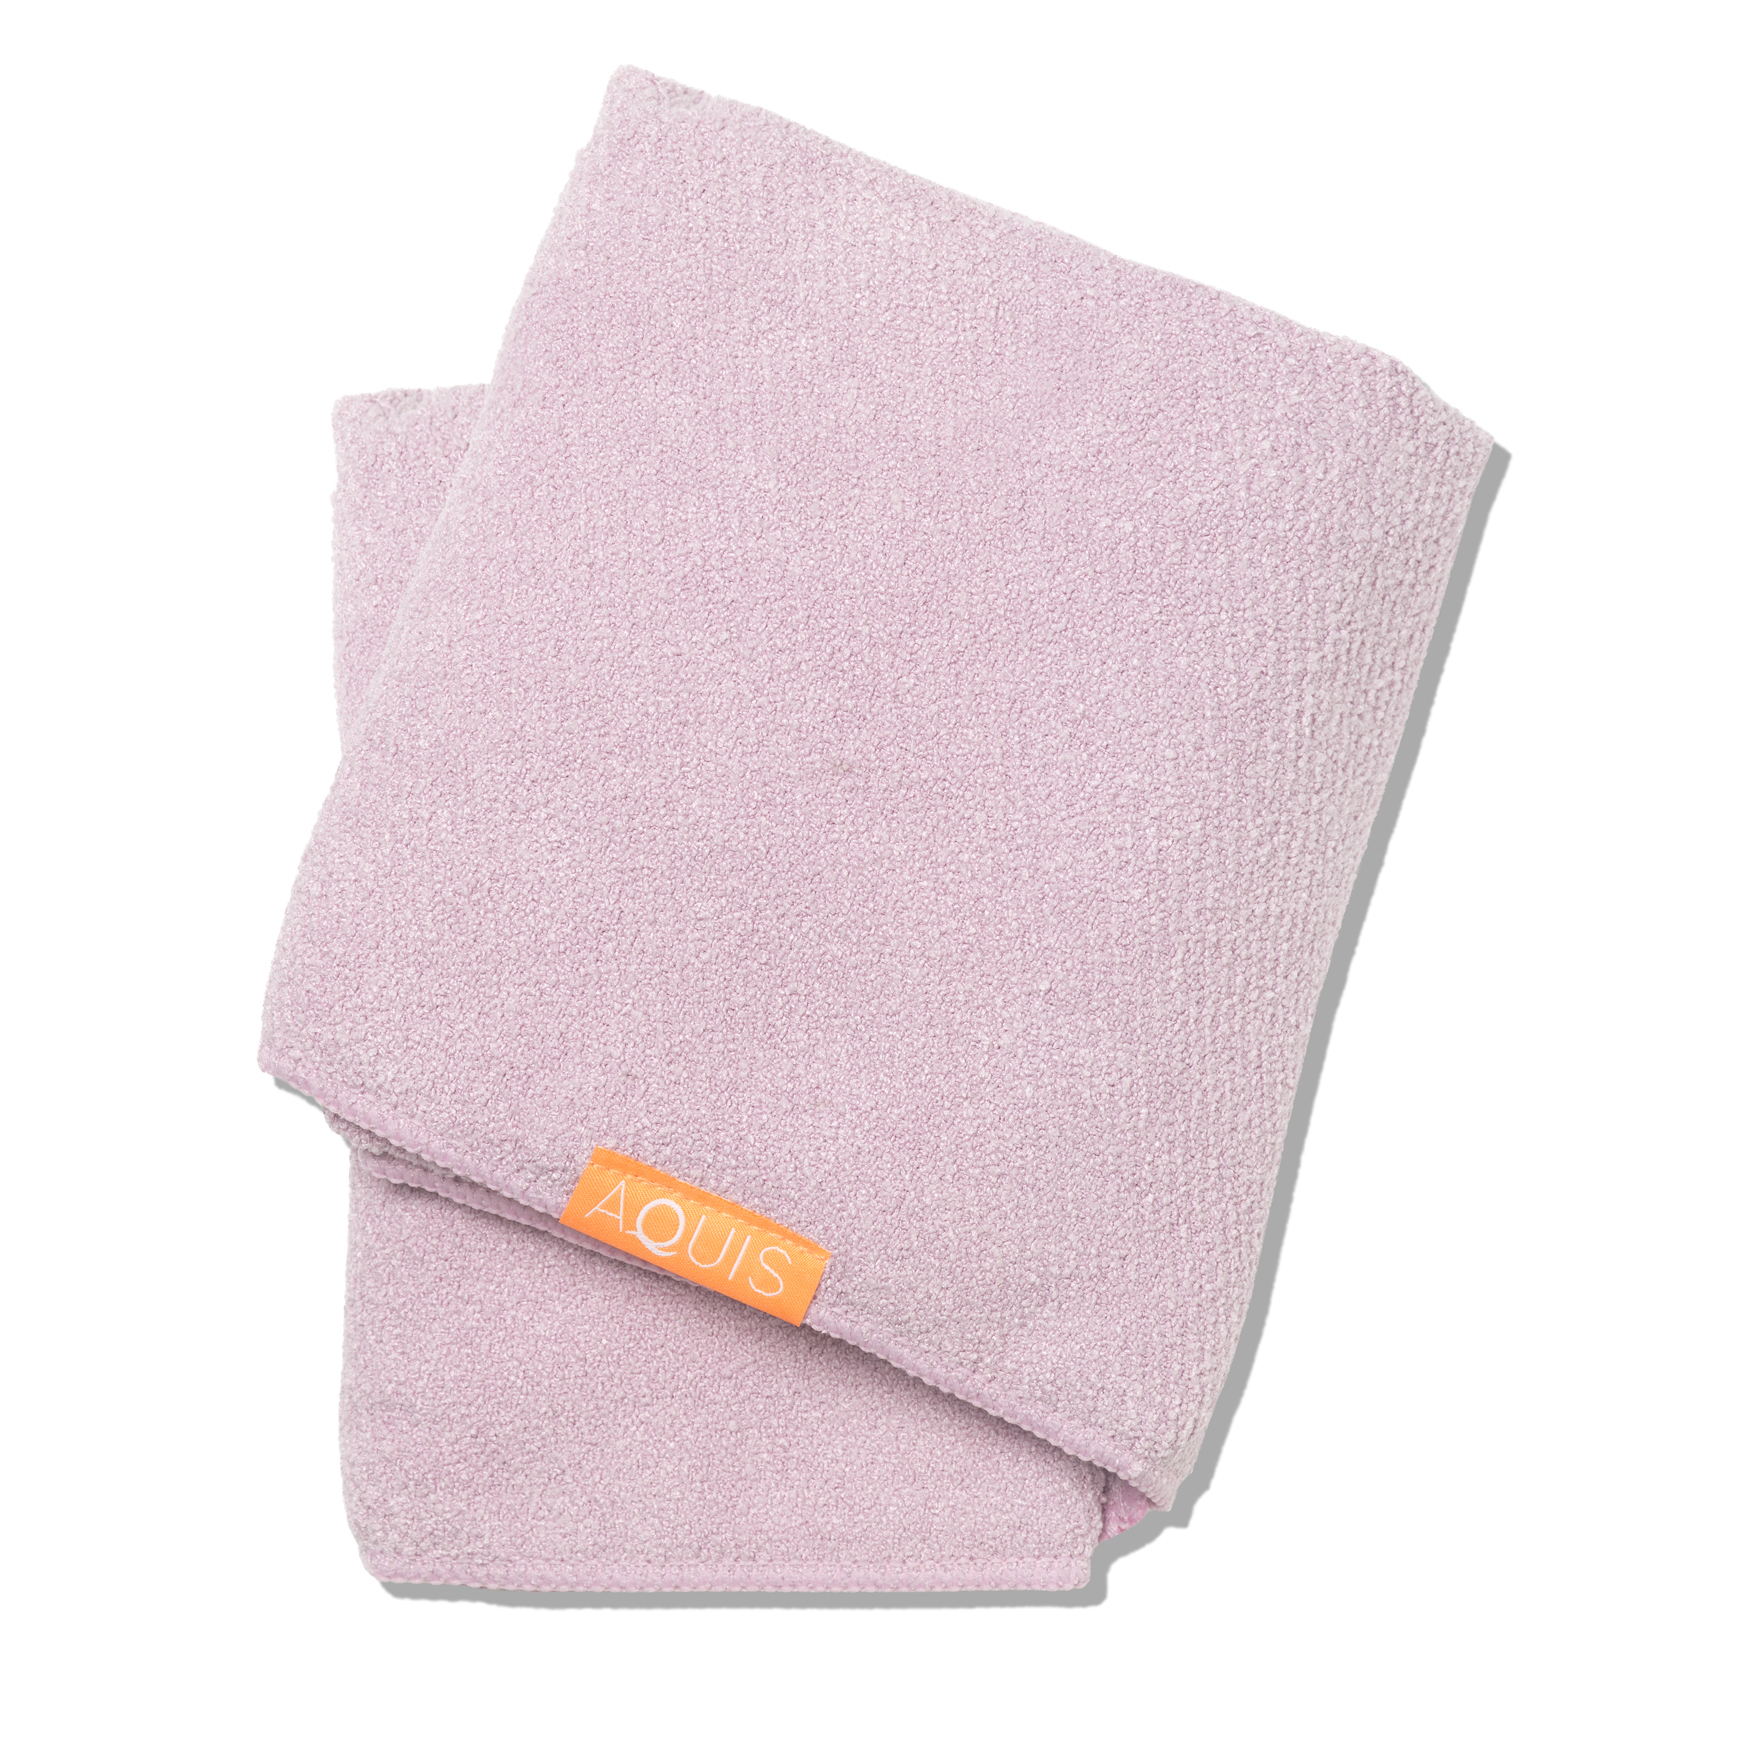 Hair Towel Lisse Luxe - Desert Rose, DESERT ROSE, large